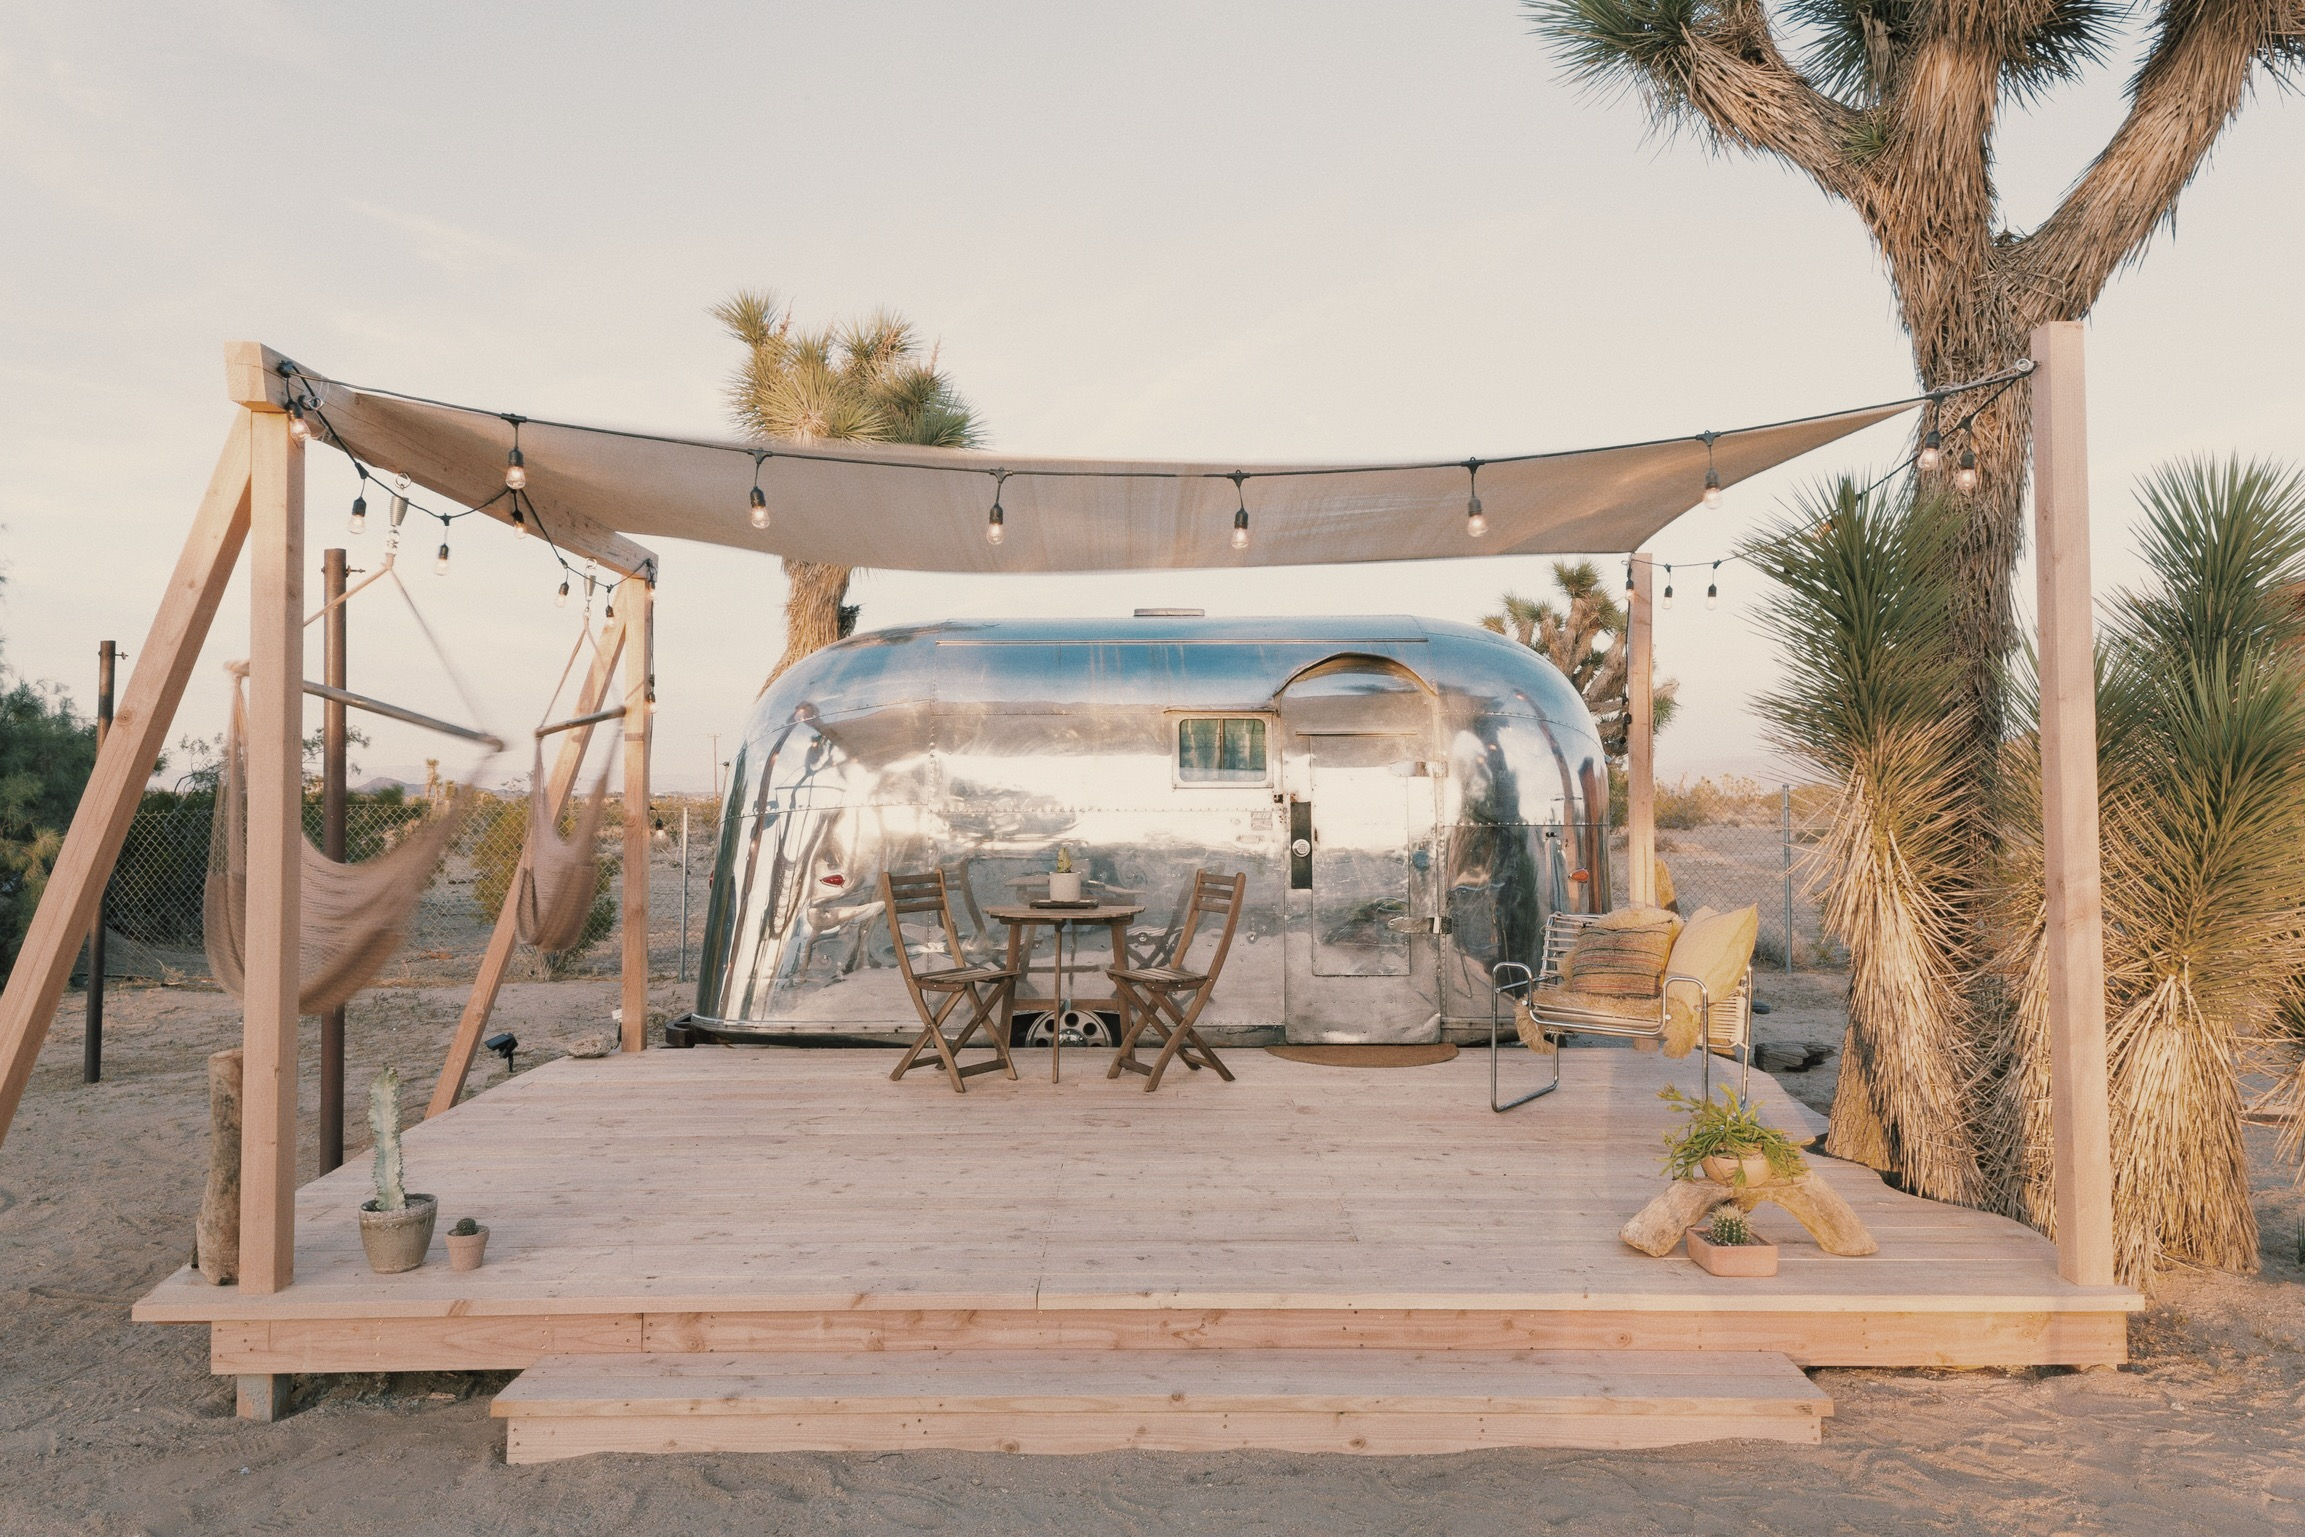 Kind of blue 1959 - Our newly renovated 1959 Airstream is a minimal, modern space inspired by the surrounding desert. Found treasures mixed with handmade pieces and light colors make this a perfect place to peacefully disconnect.Casper King - Sleeps 2BOOK HERE